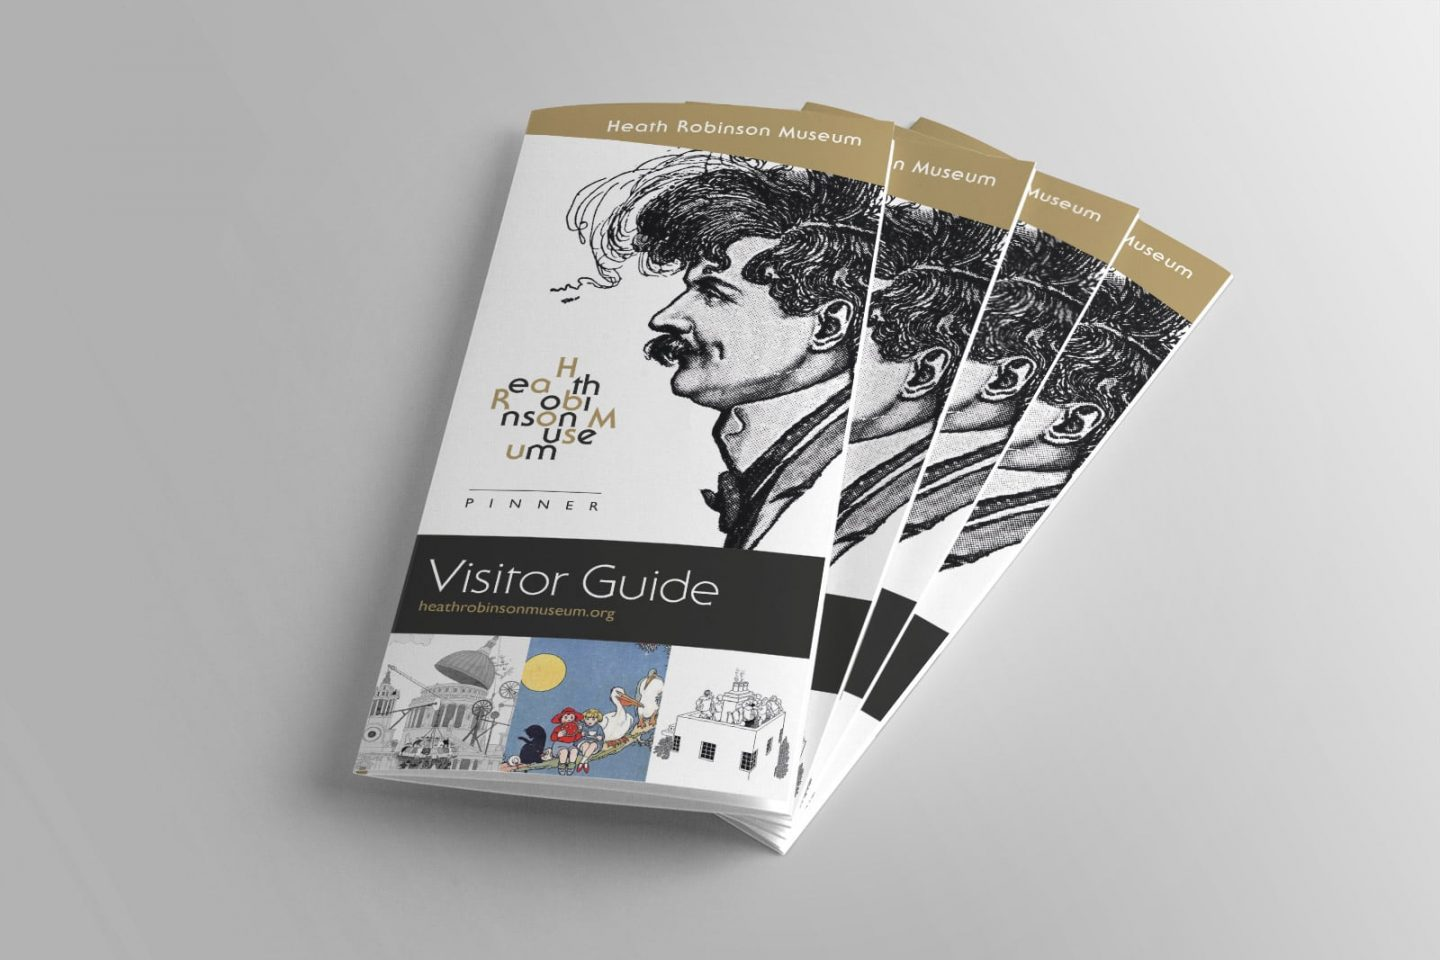 Visitor-Guide-Covers-1440x960